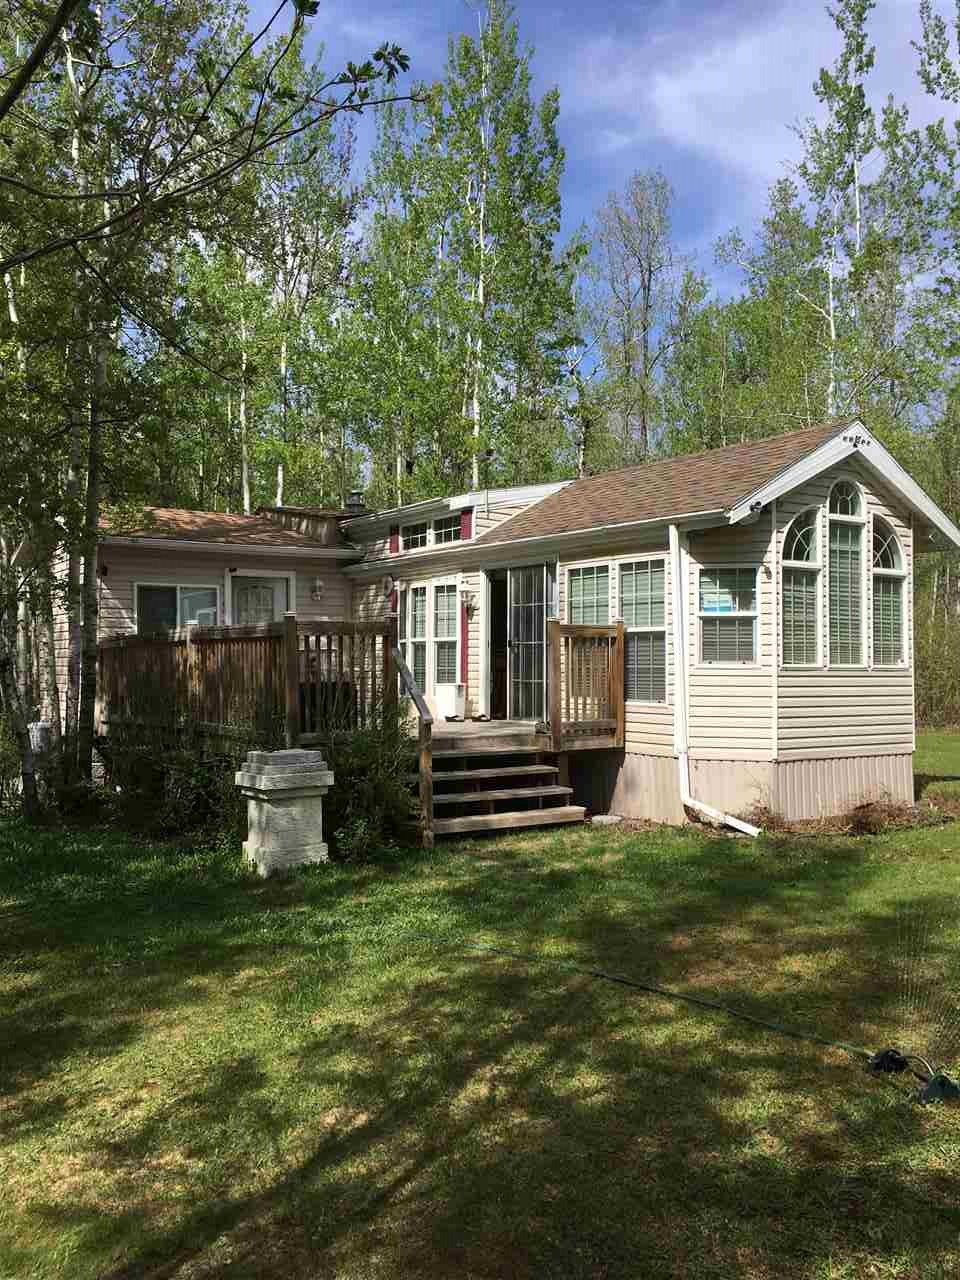 Escape to a peaceful beautifully landscaped and pristine 2.5 acres at Mulhurst Bay, Pigeon Lake. Enjoy the 3 season 2008 park Model with an addition for guests. The lot is serviced with a drilled well, 285 ft. deep, power, propane heat, 2000 gallon septic holding tank. There is natural gas onto the property as well. The yard features 2 storage sheds, a Sea-can, and a bunk house. The home has a large deck to enjoy the landscaped yard. Total privacy from neighbors, 1 minute to Mulhurst Bay, groceries, golf, boat launch and public beach.